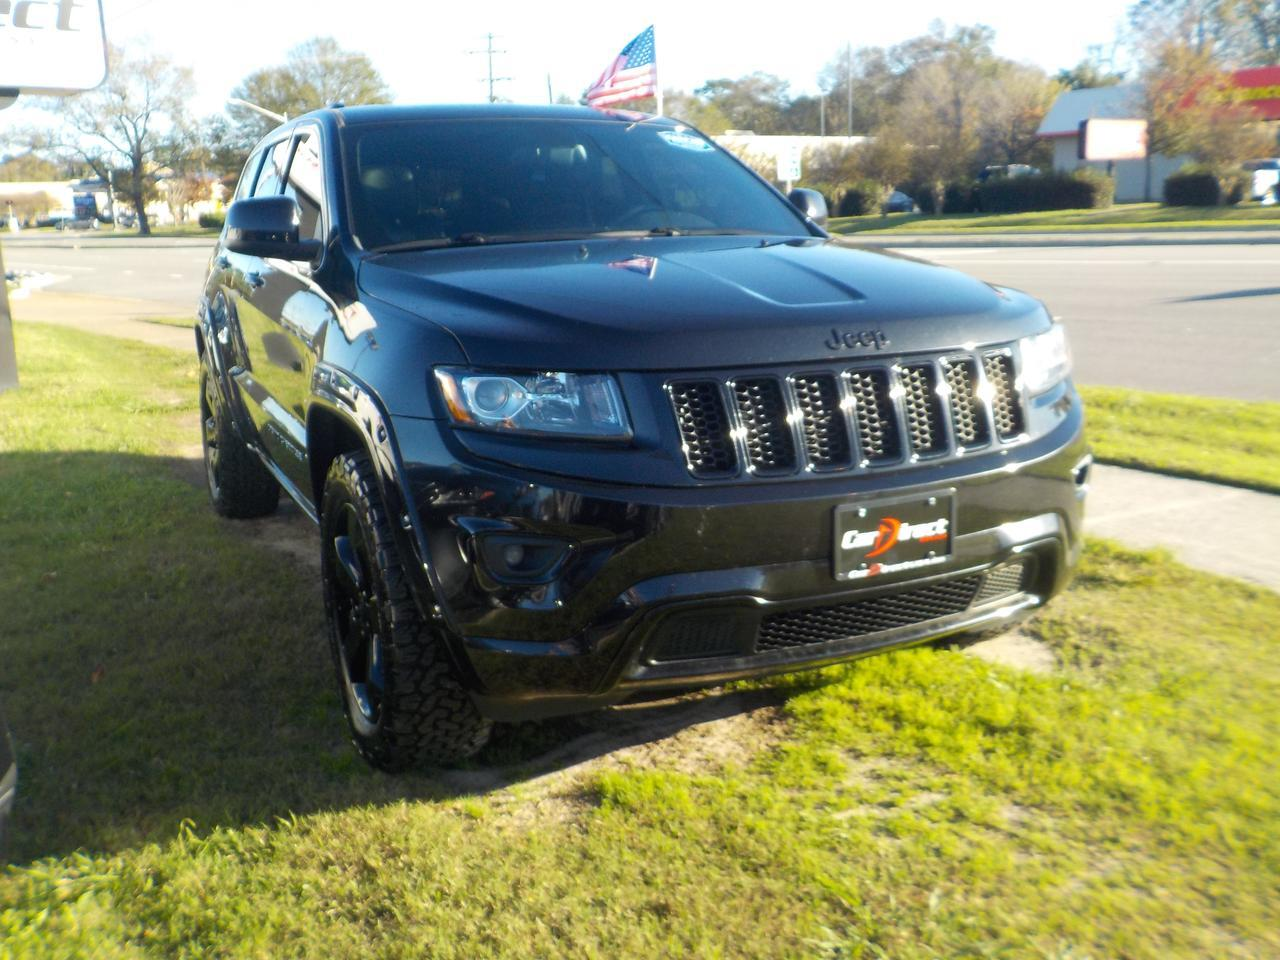 2015 JEEP GRAND CHEROKEE LAREDO 4X4, BLUETOOTH, REMOTE START, SUNROOF, HEATED SEATS, LEATHER, ONLY 62K MILES! Virginia Beach VA